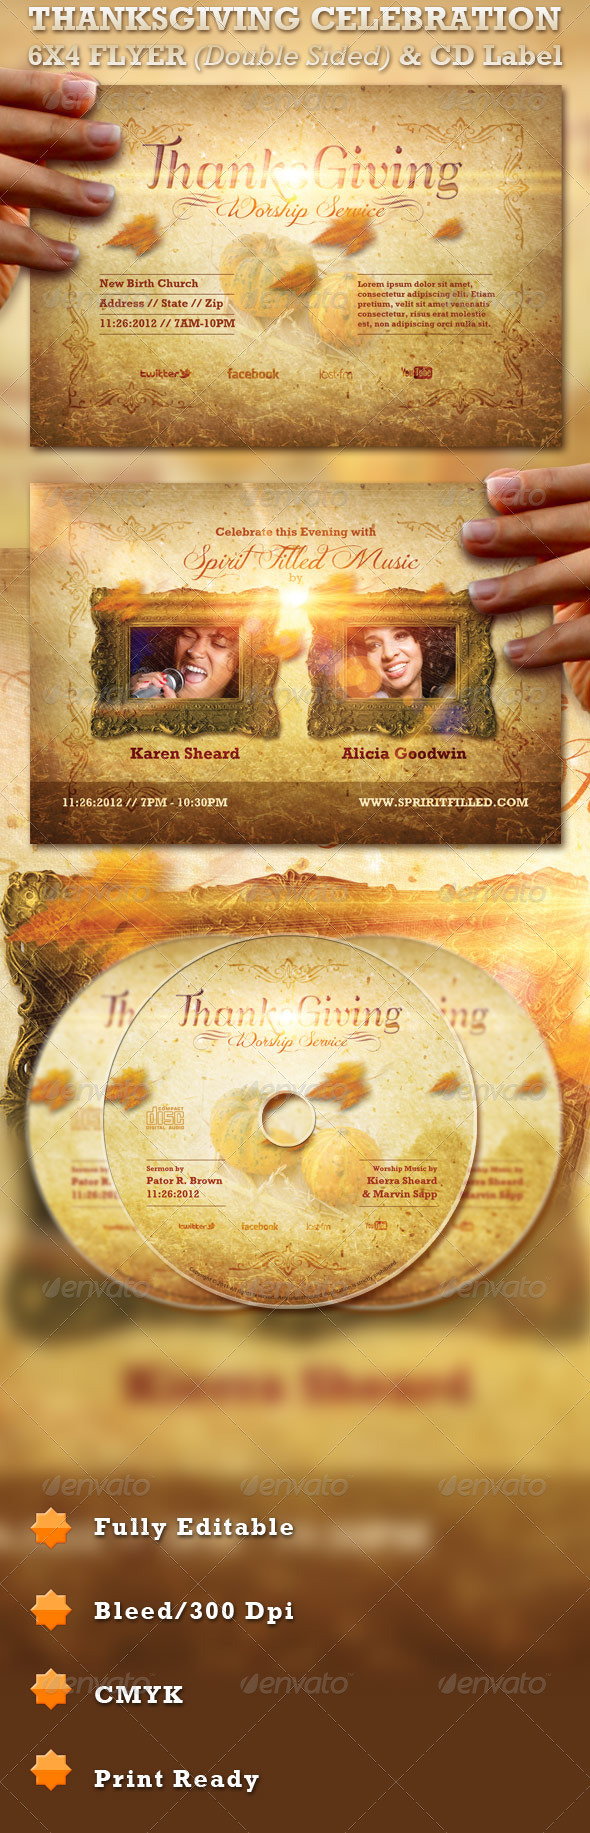 Thanksgiving Celebration Flyer and CD Label